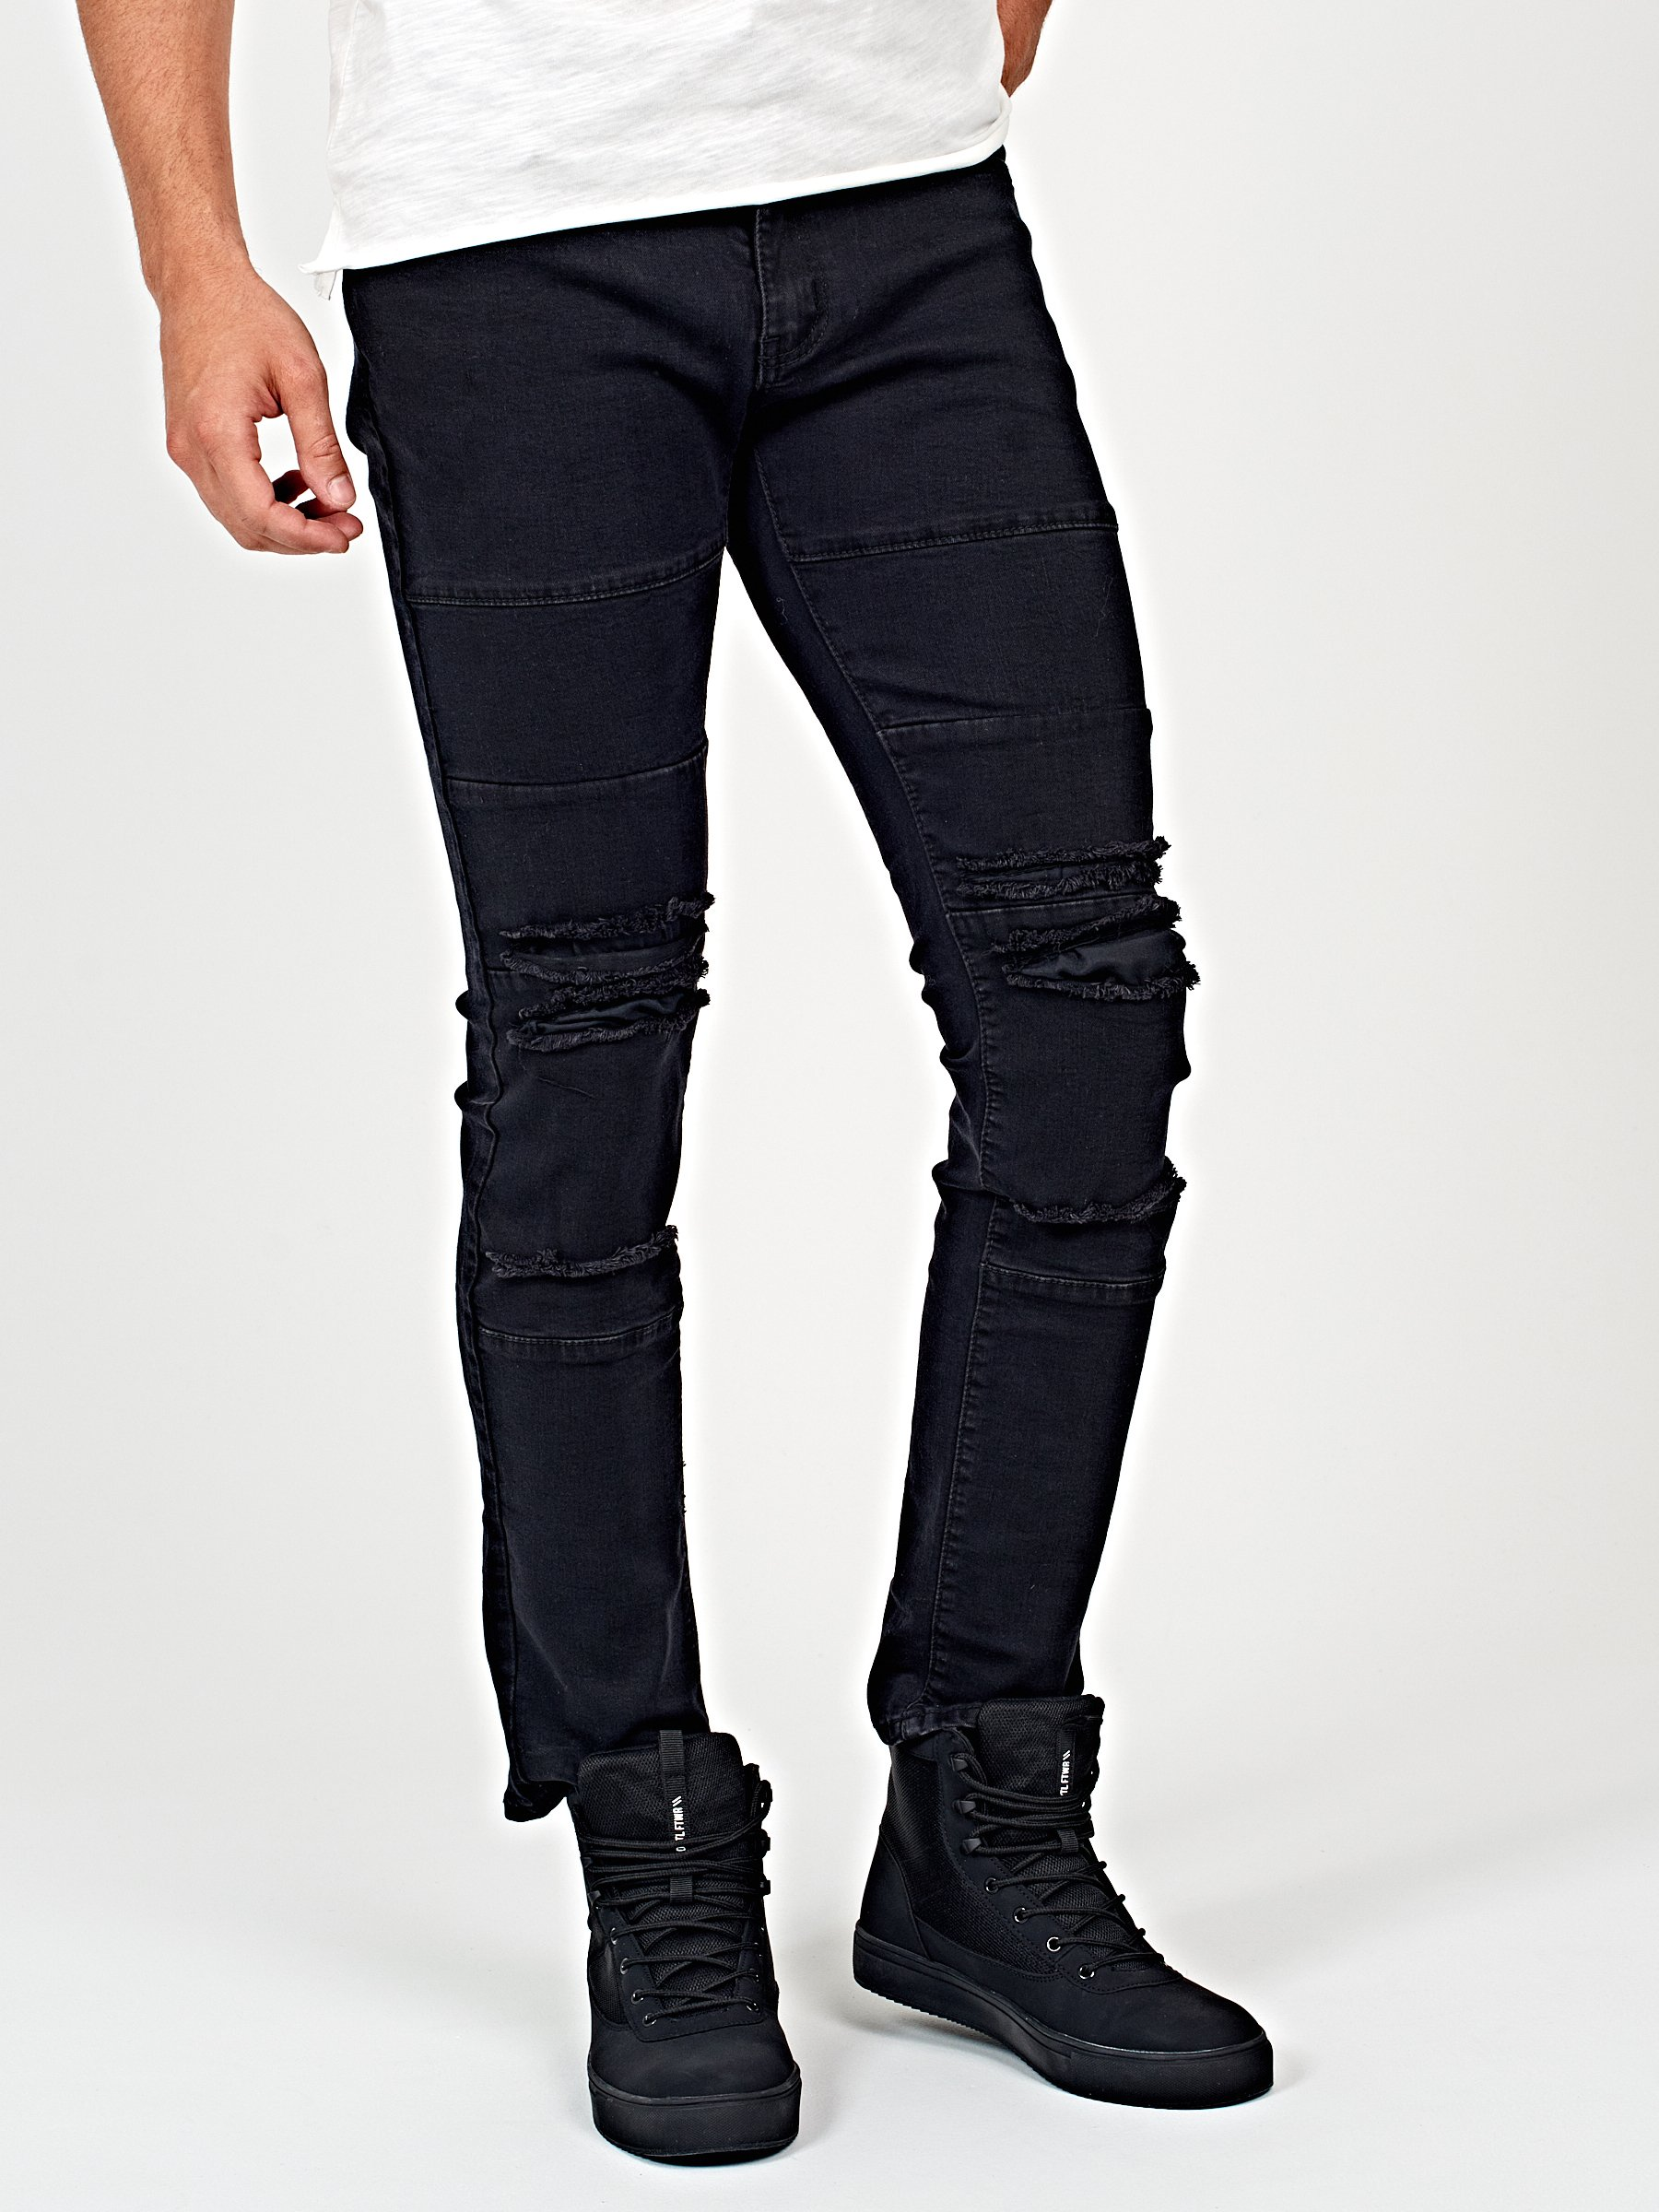 Destroyed straight slim fit jeans in black wash